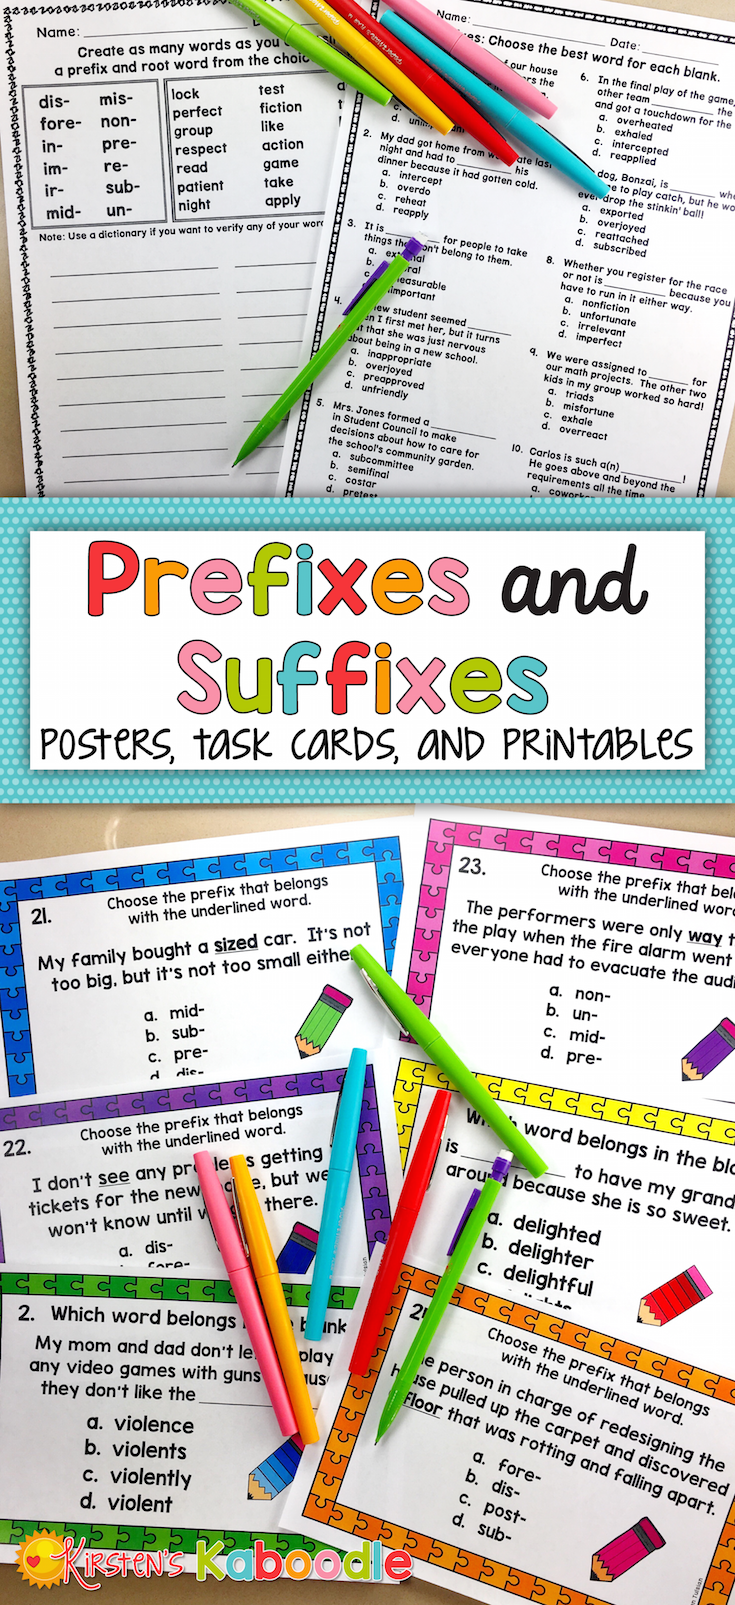 Are You Looking For No Prep Prefix And Suffix Materials For Your 3rd 4th 5th Or 6th Grade Class With Bright Prefixes And Suffixes Suffix Posters Prefixes [ 1605 x 735 Pixel ]